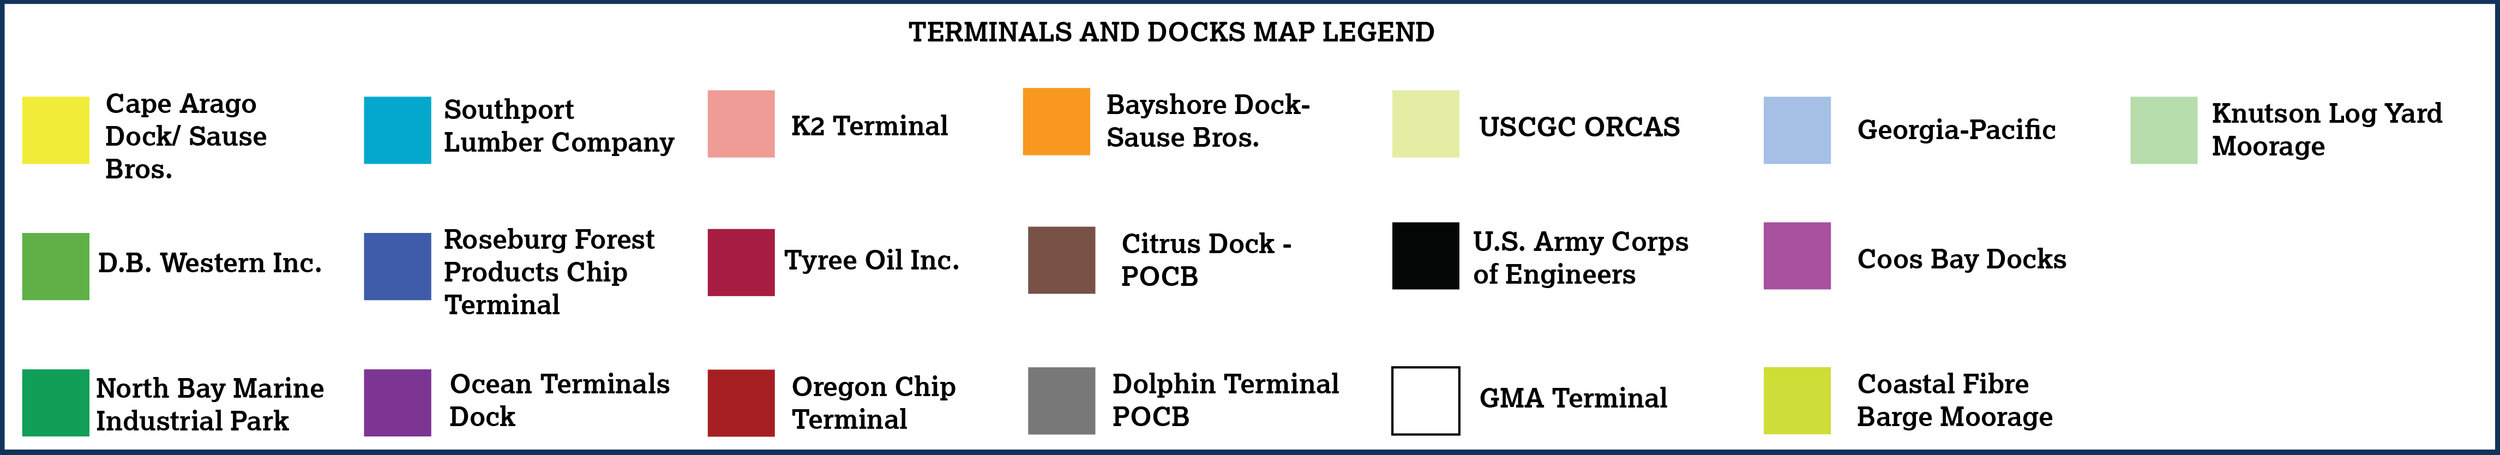 Terminal and Docks Map Legend